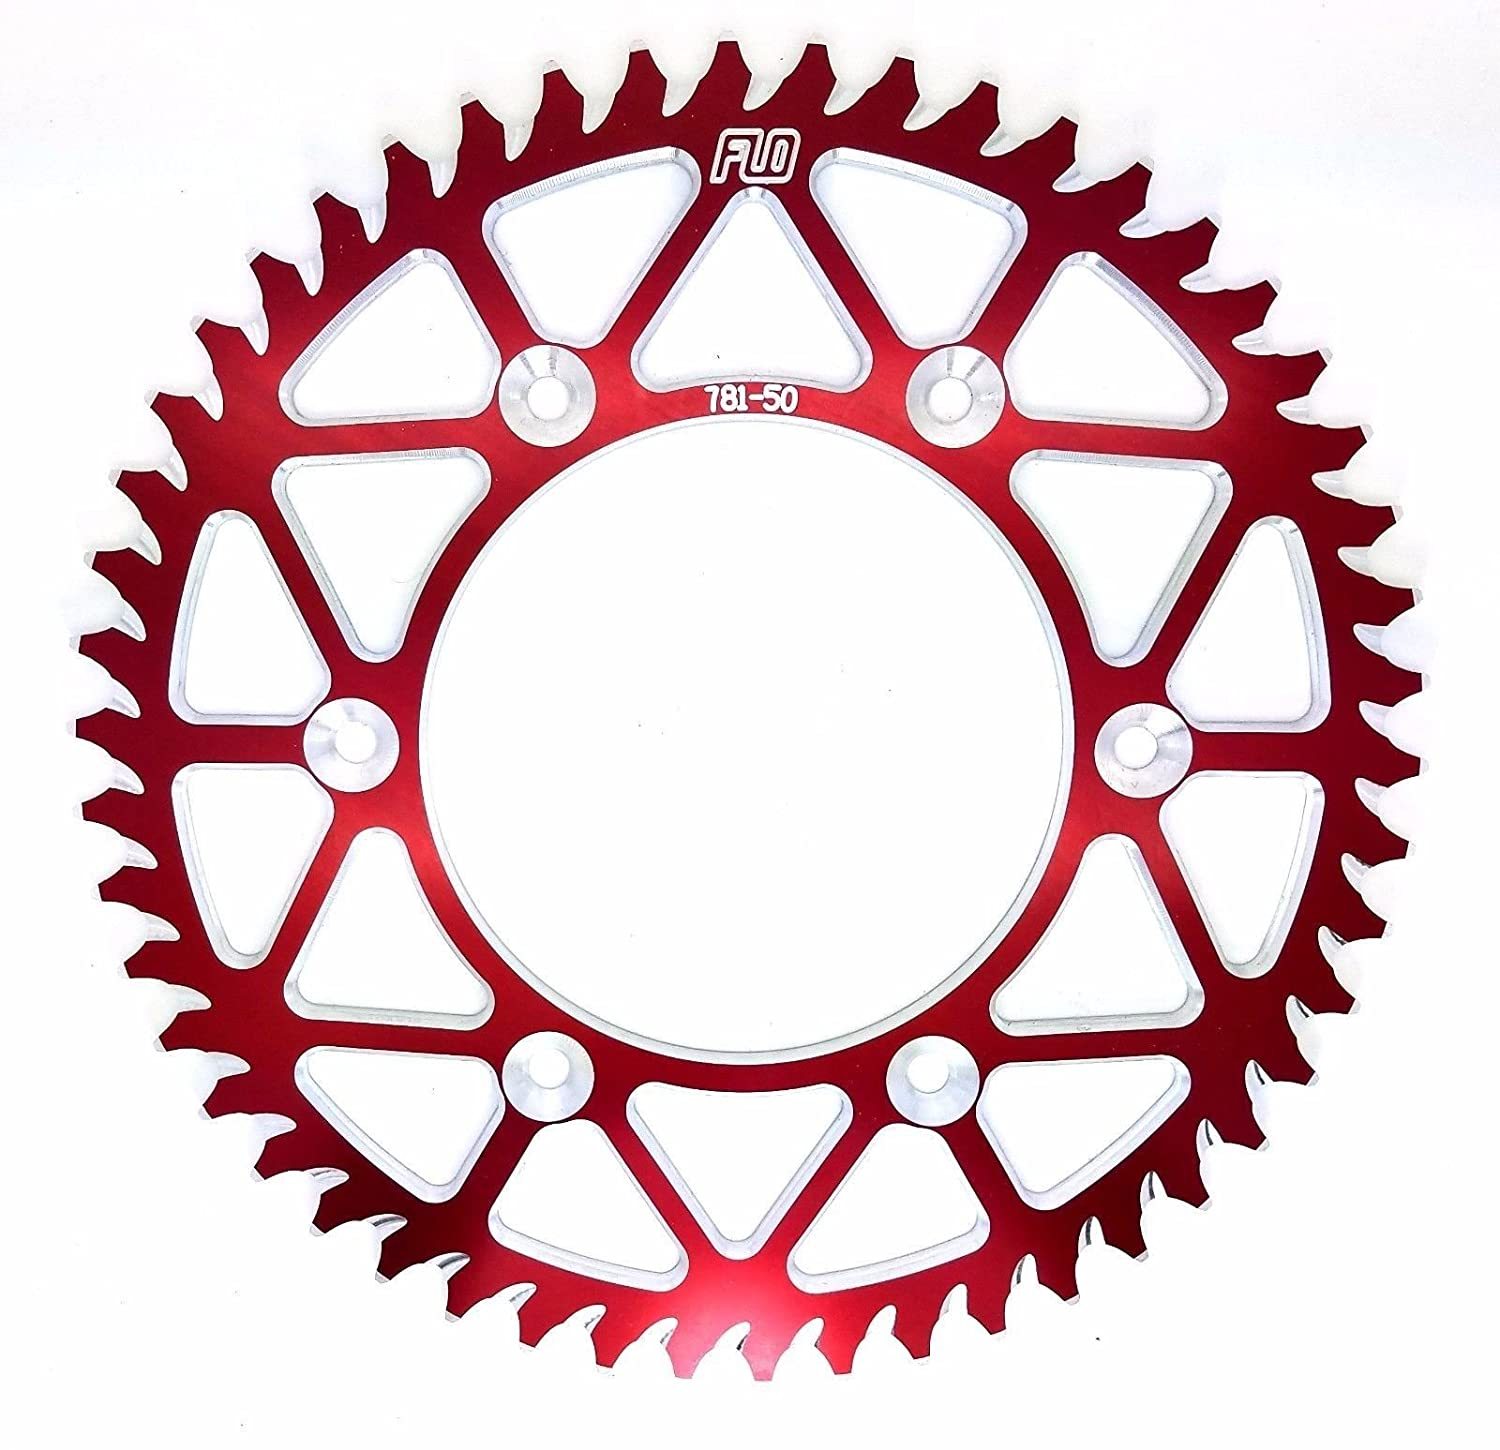 50 50T, RED 49 RENTHAL R1 COMBO KIT Fits: CR125 // CRF250 13T FRONT SPROCKET // 48 51 TOOTH REAR SPROCKET